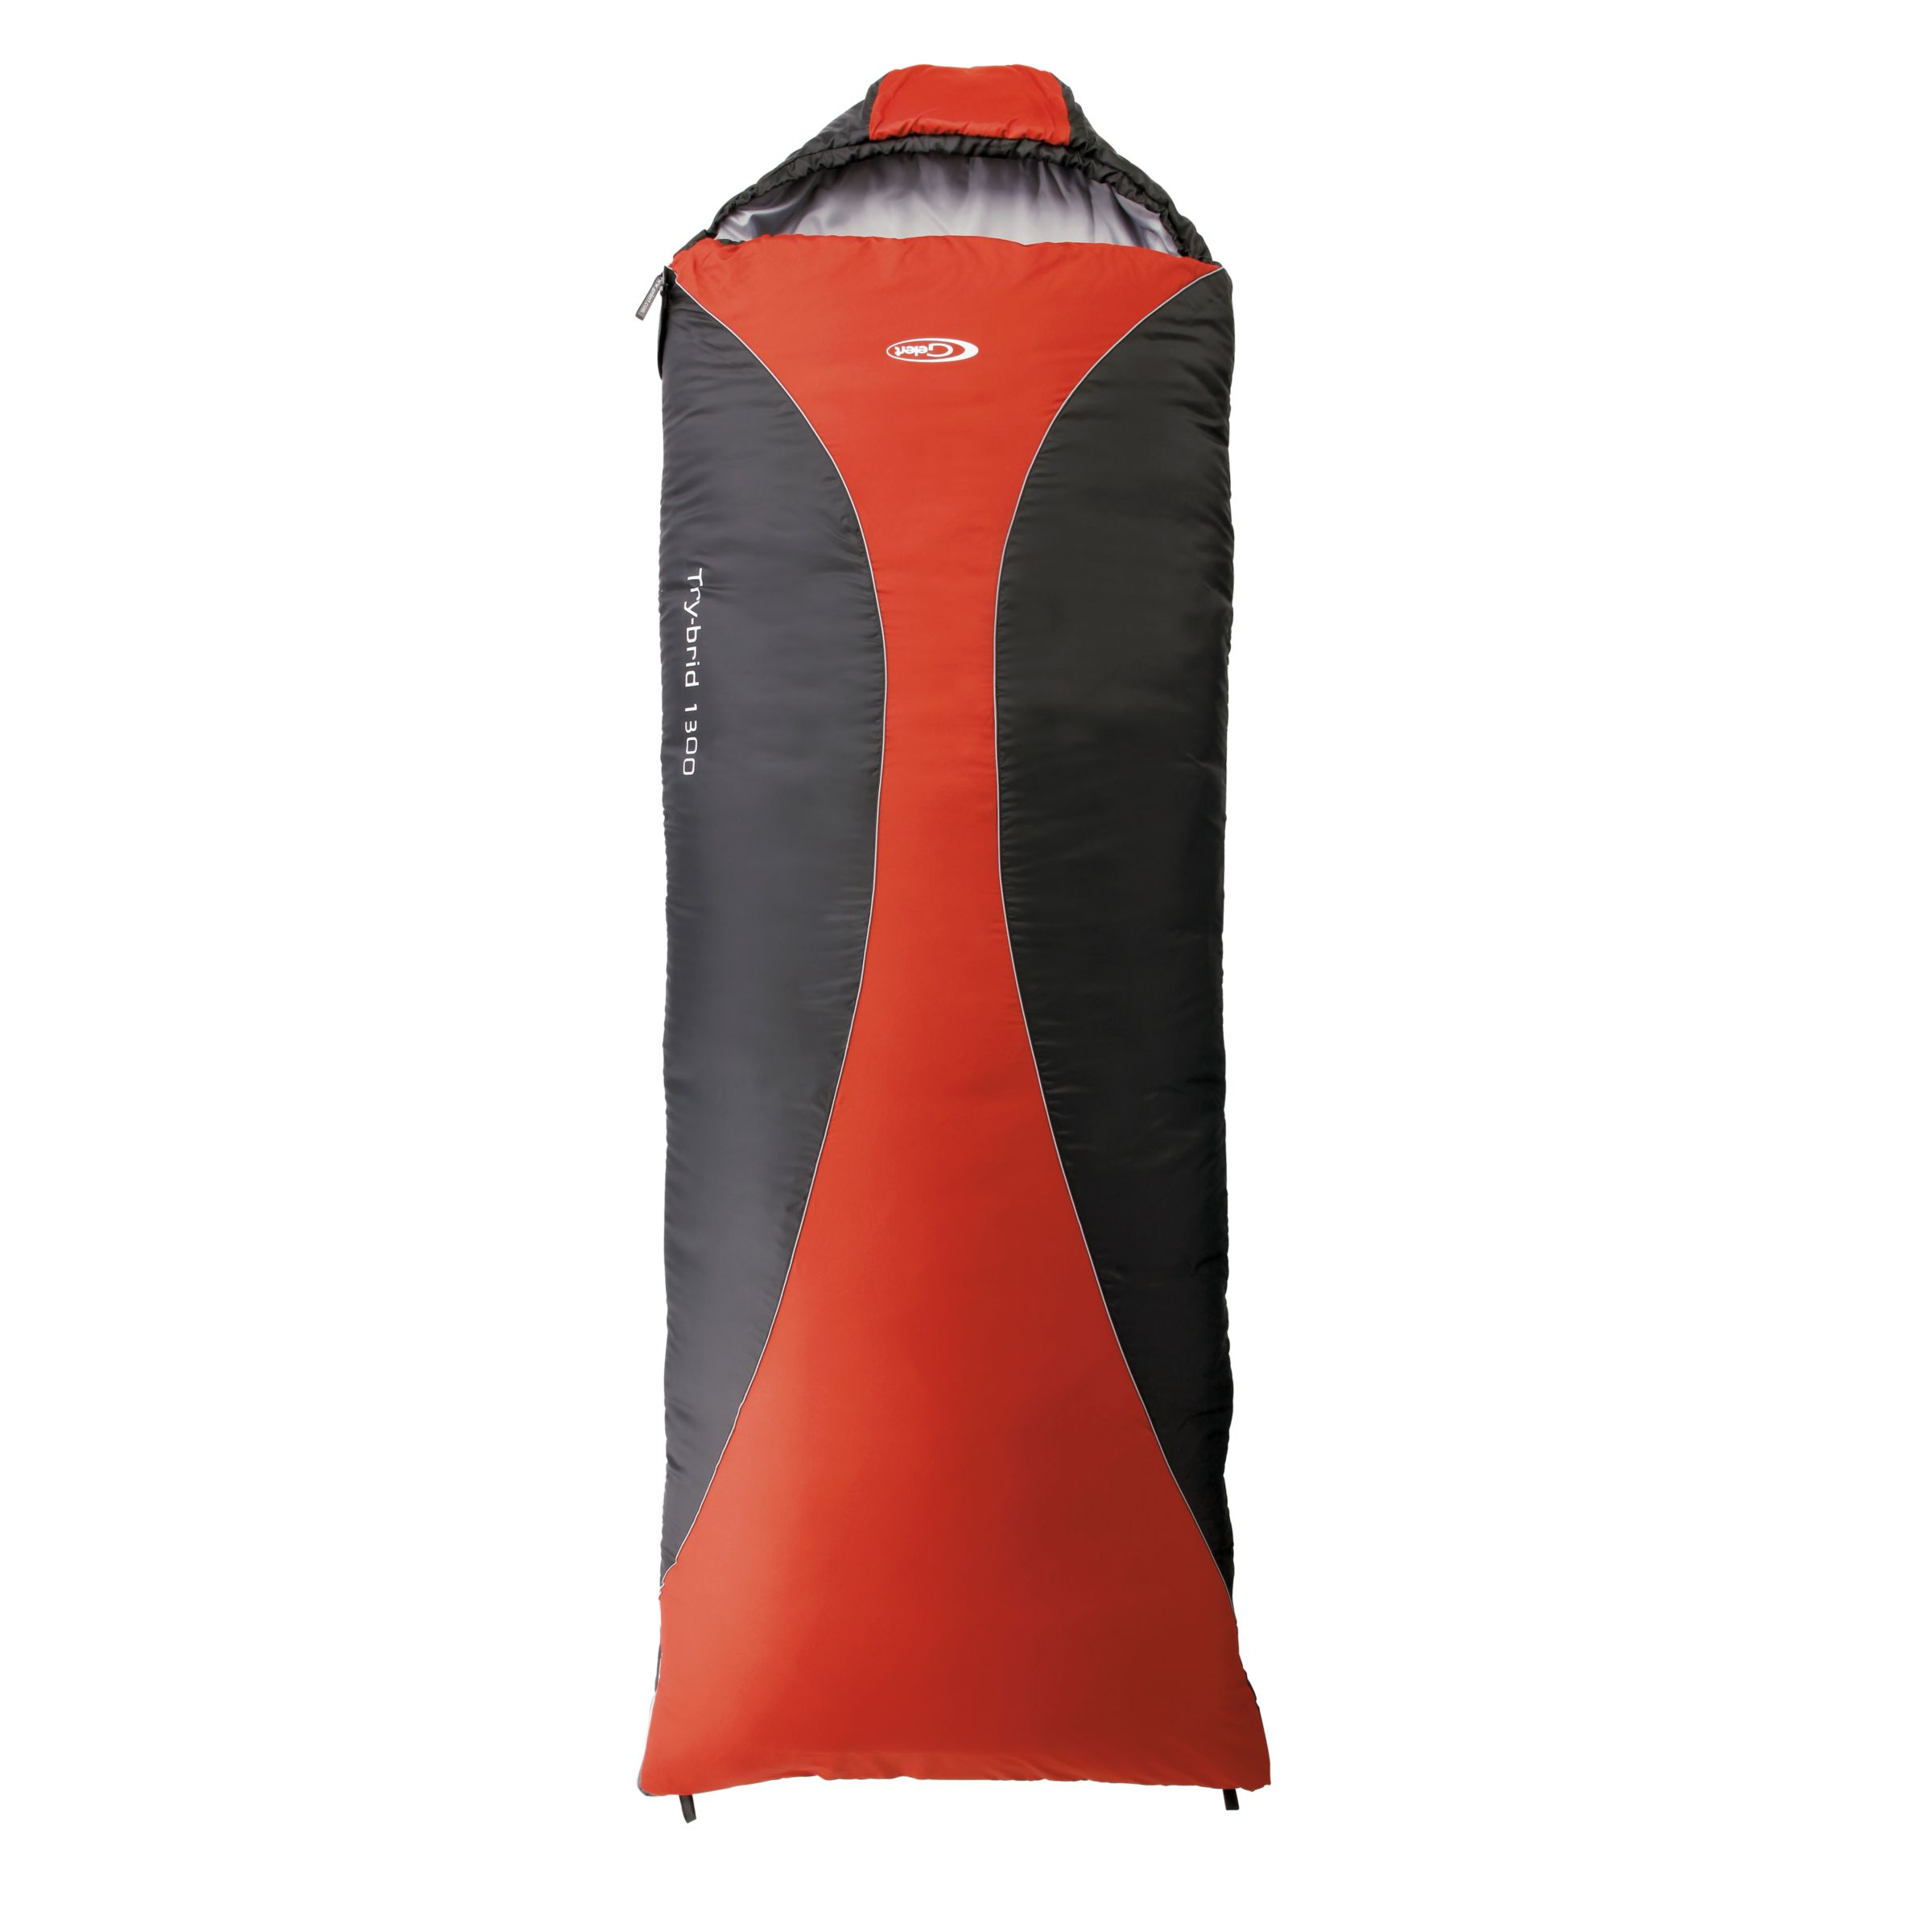 Try-Brid 1300 Sleeping Bag, Black/Red